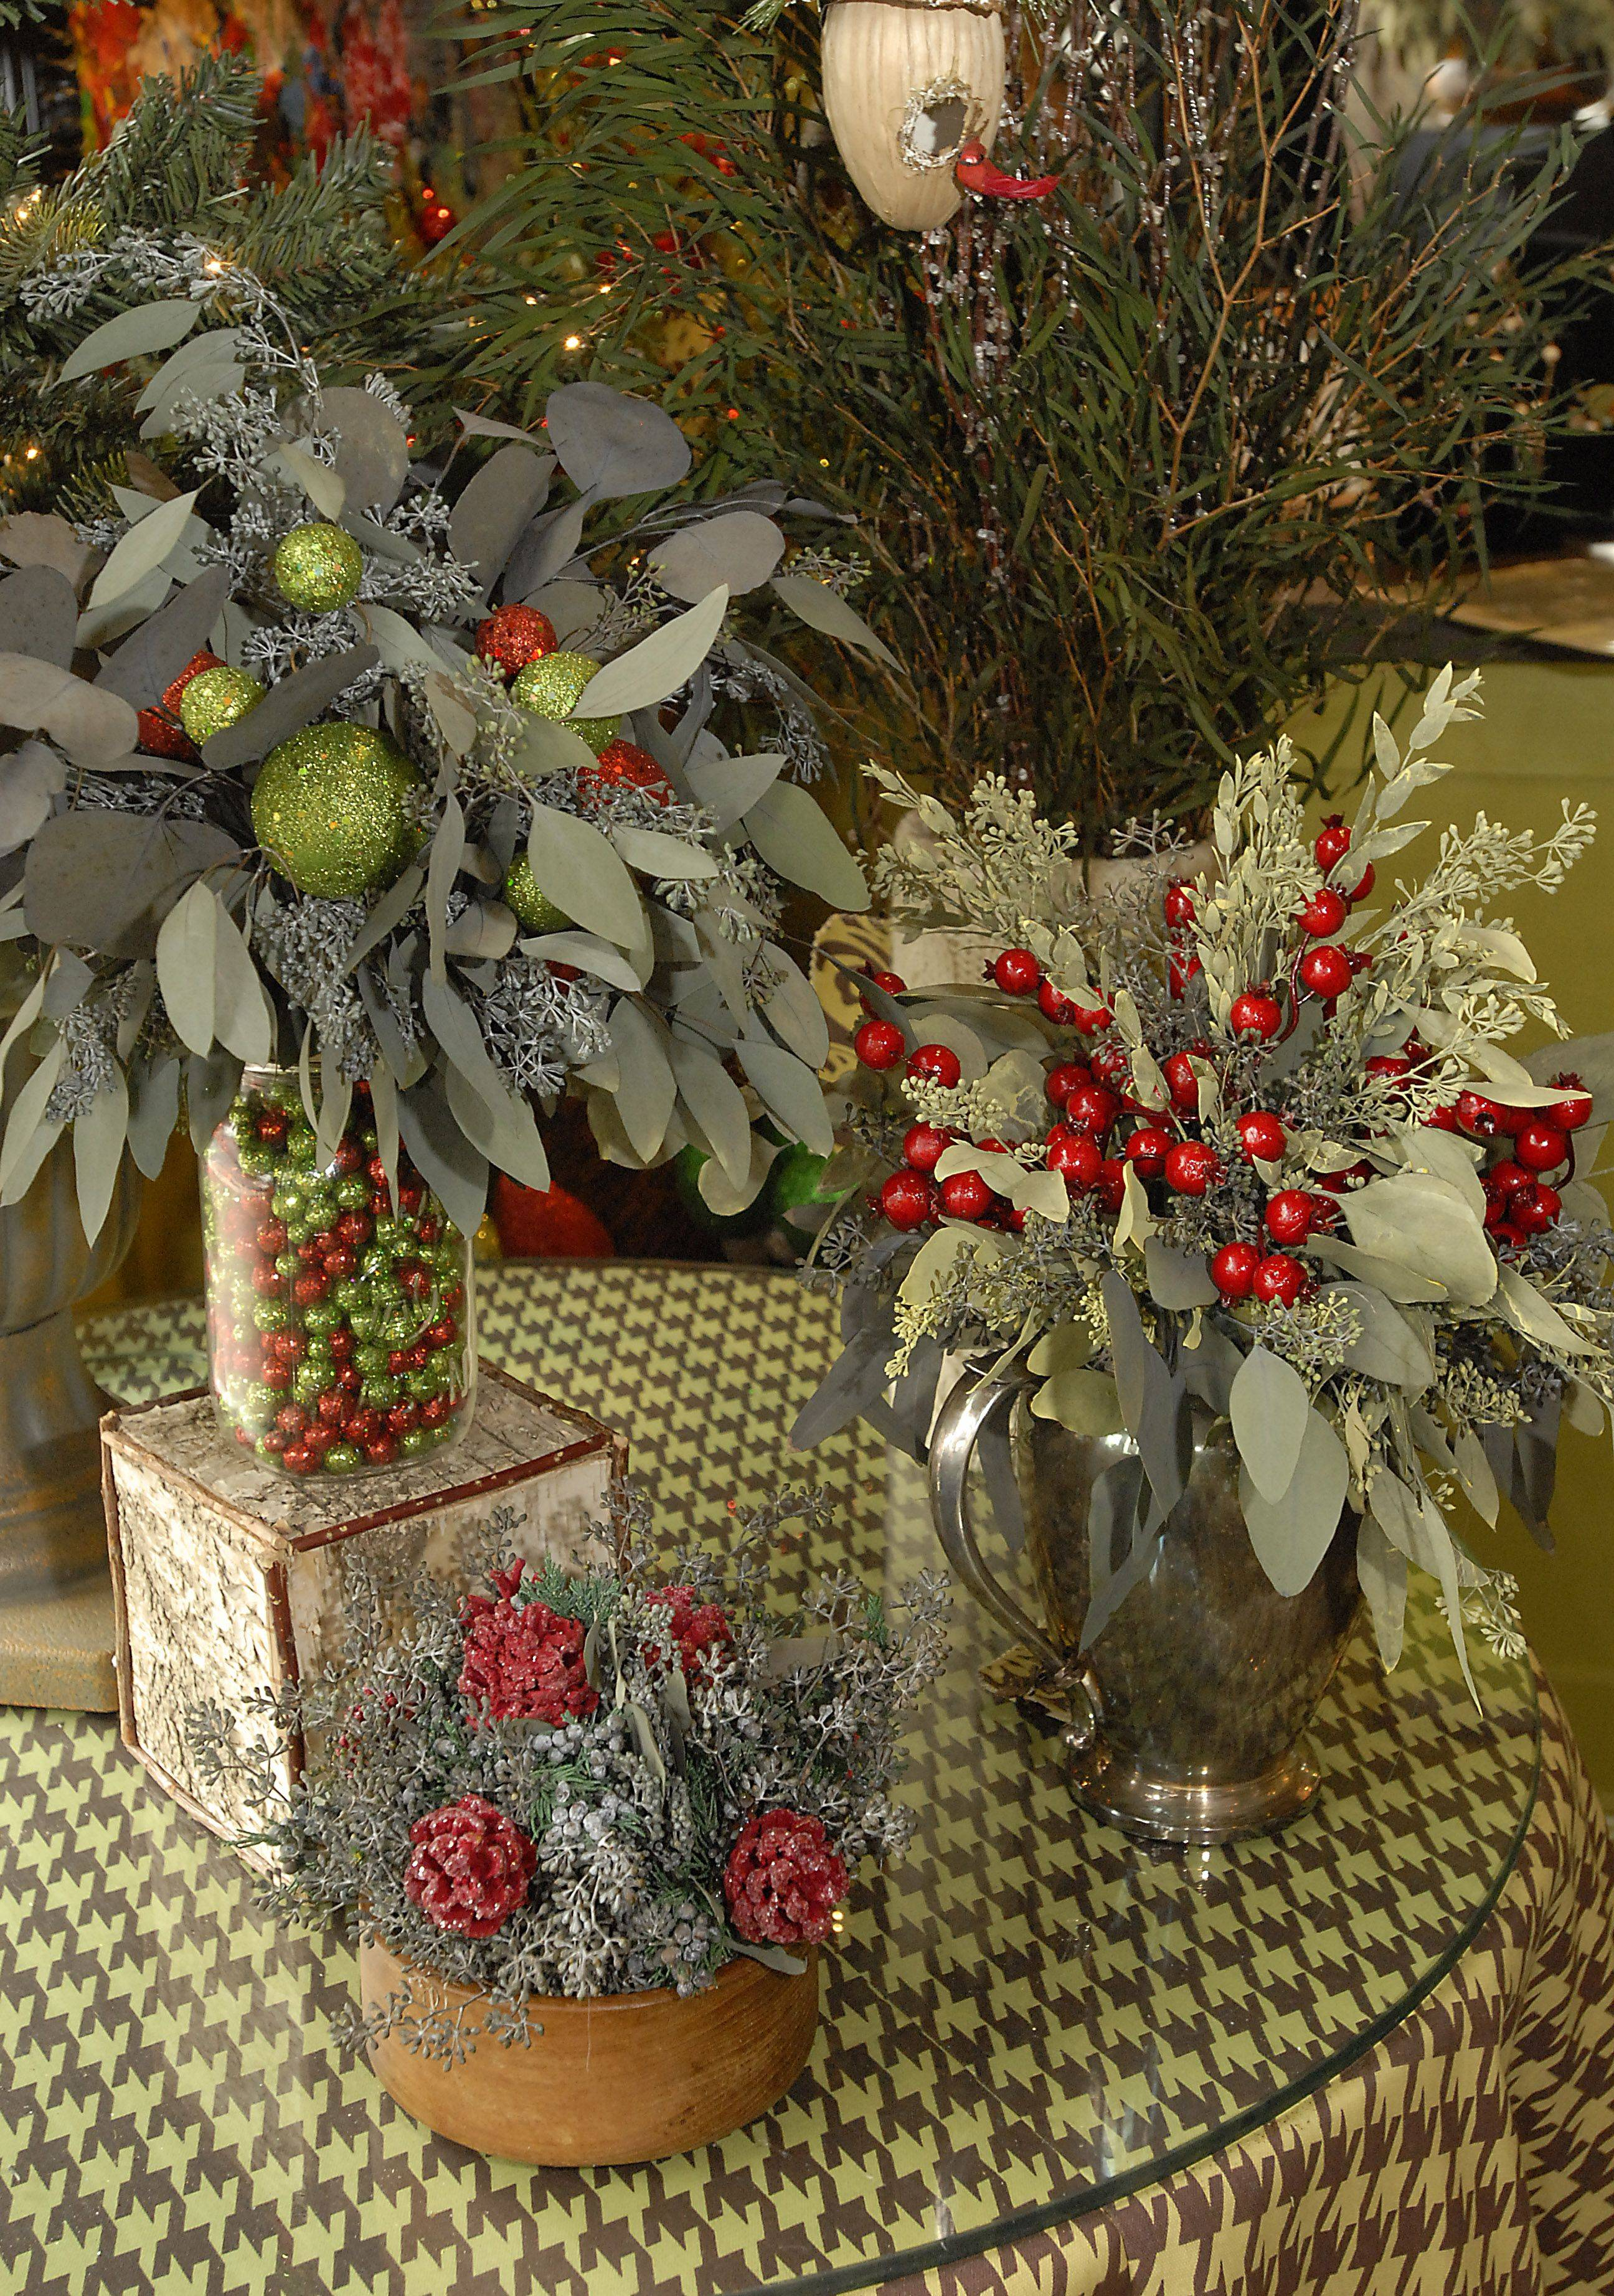 All kinds of thrift shop items turn into elegant vases for Gail Kueker's preserved greenery.